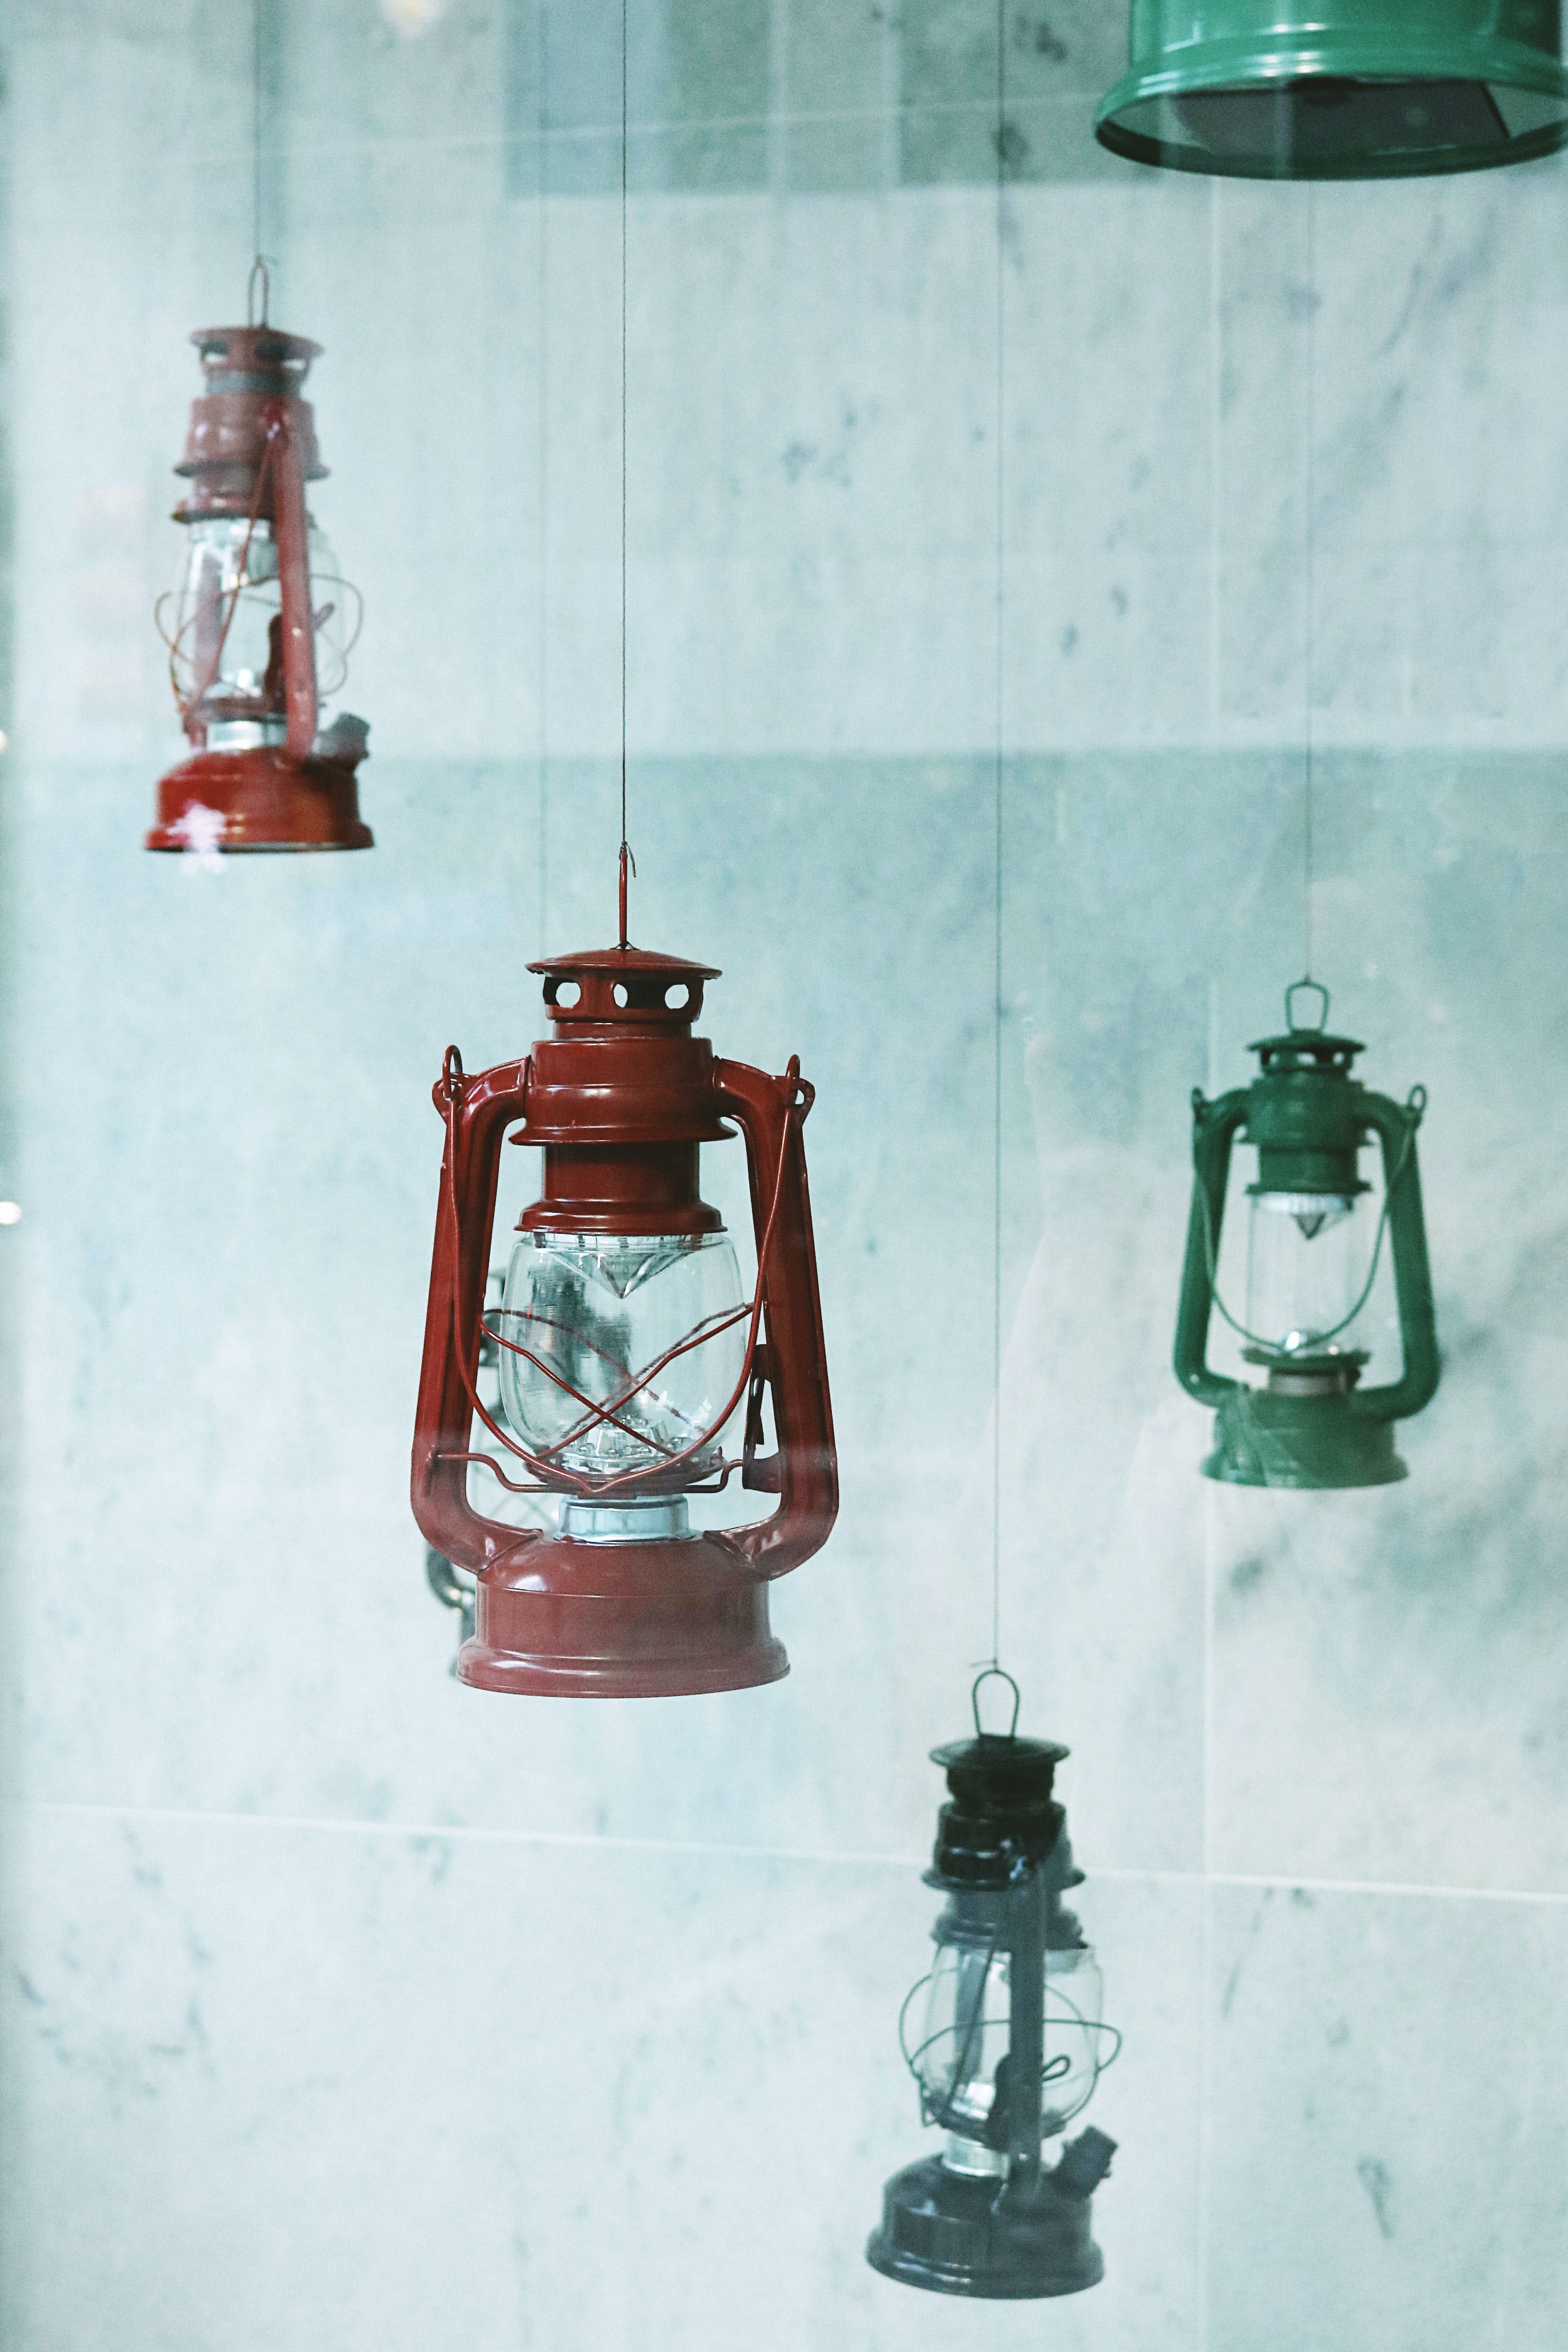 Four Assorted-color Metal Gas Lanterns Hanging Near Tile Wall